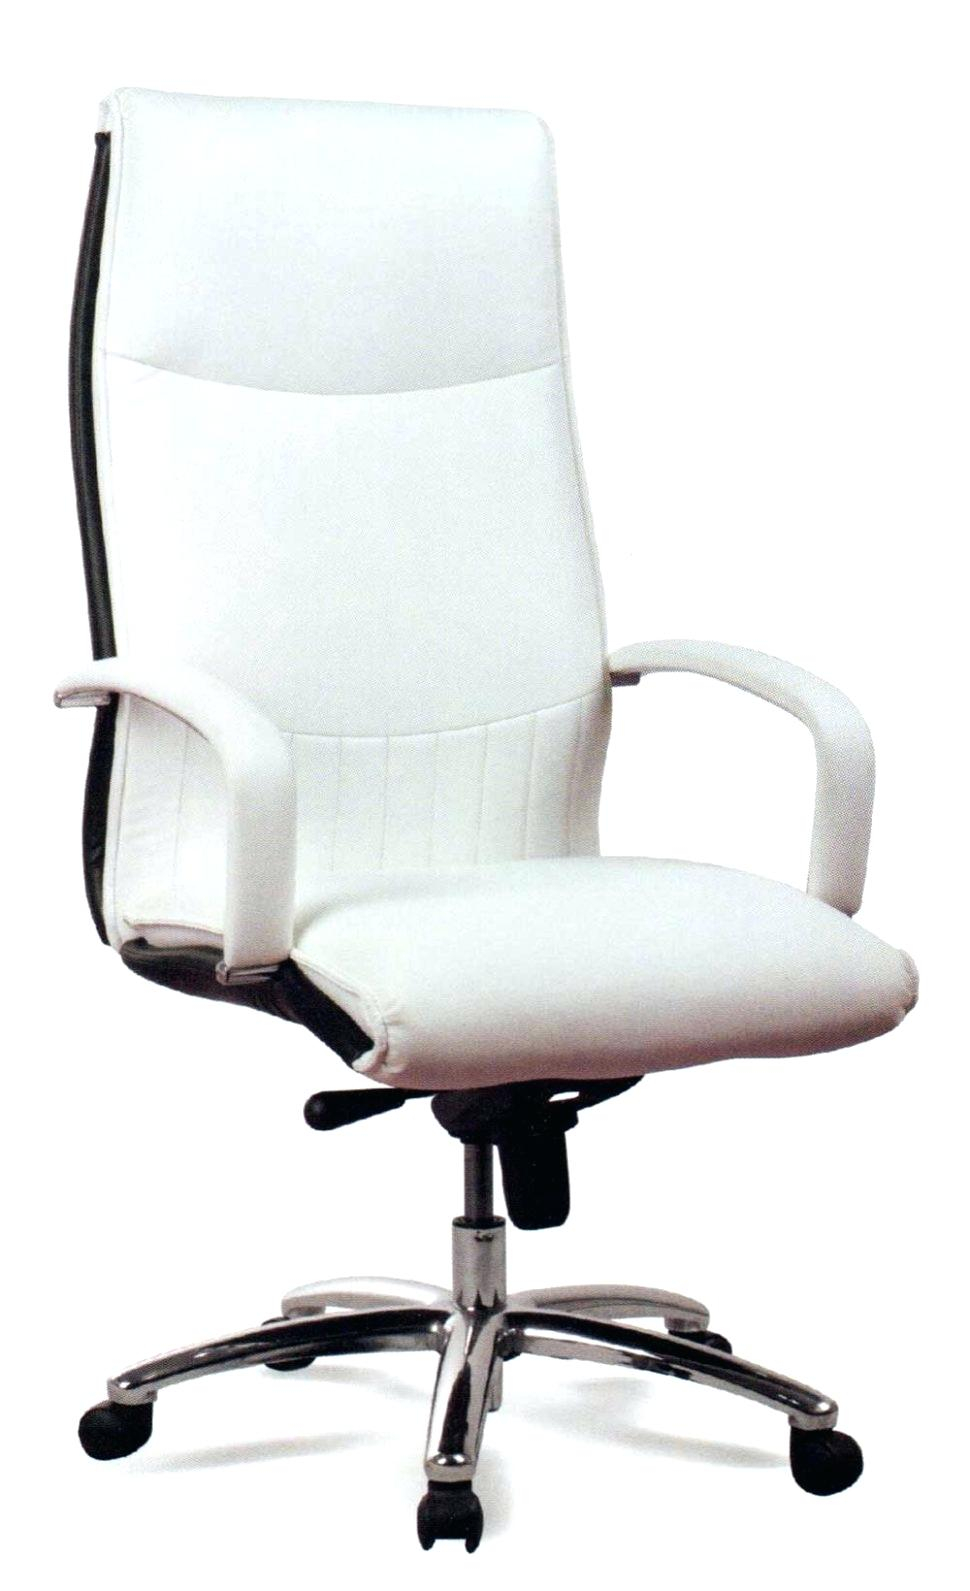 Desk Chairs White Leather Office Chair Under 100 Canada Modern pertaining to measurements 970 X 1591